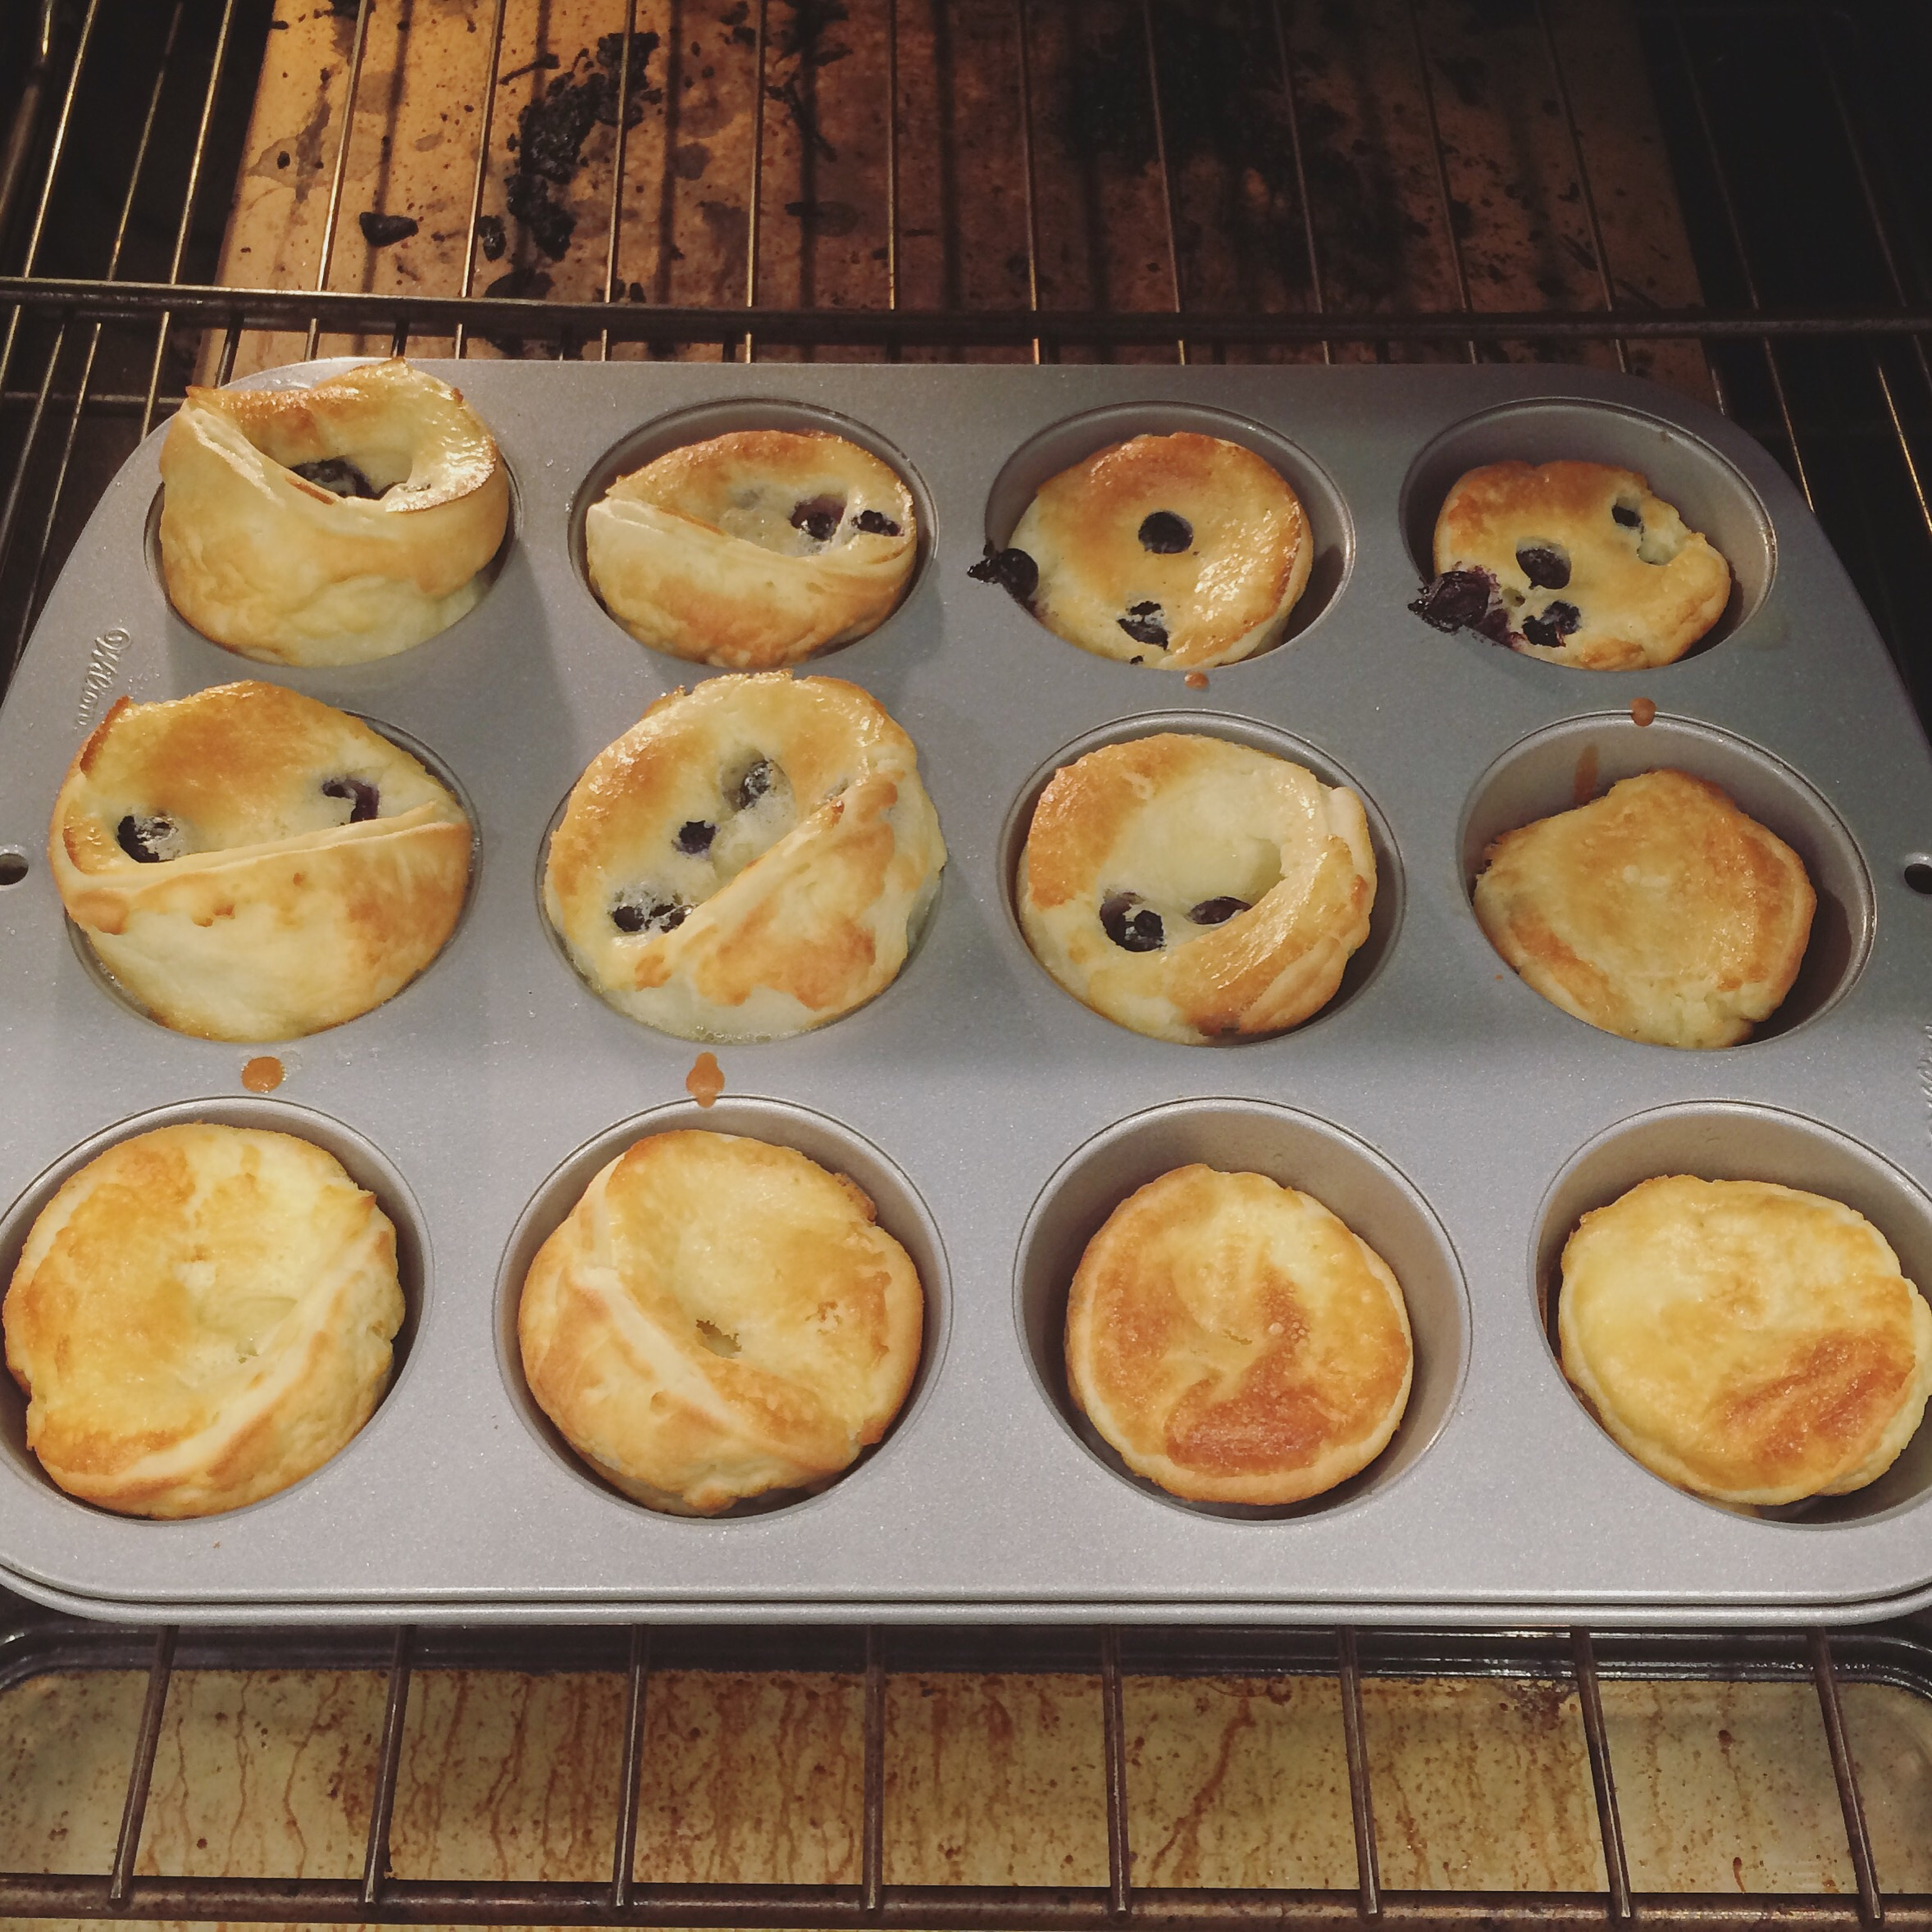 Same batter, just poured in muffin pans. It worked just the same and the kids loved the little personal size!